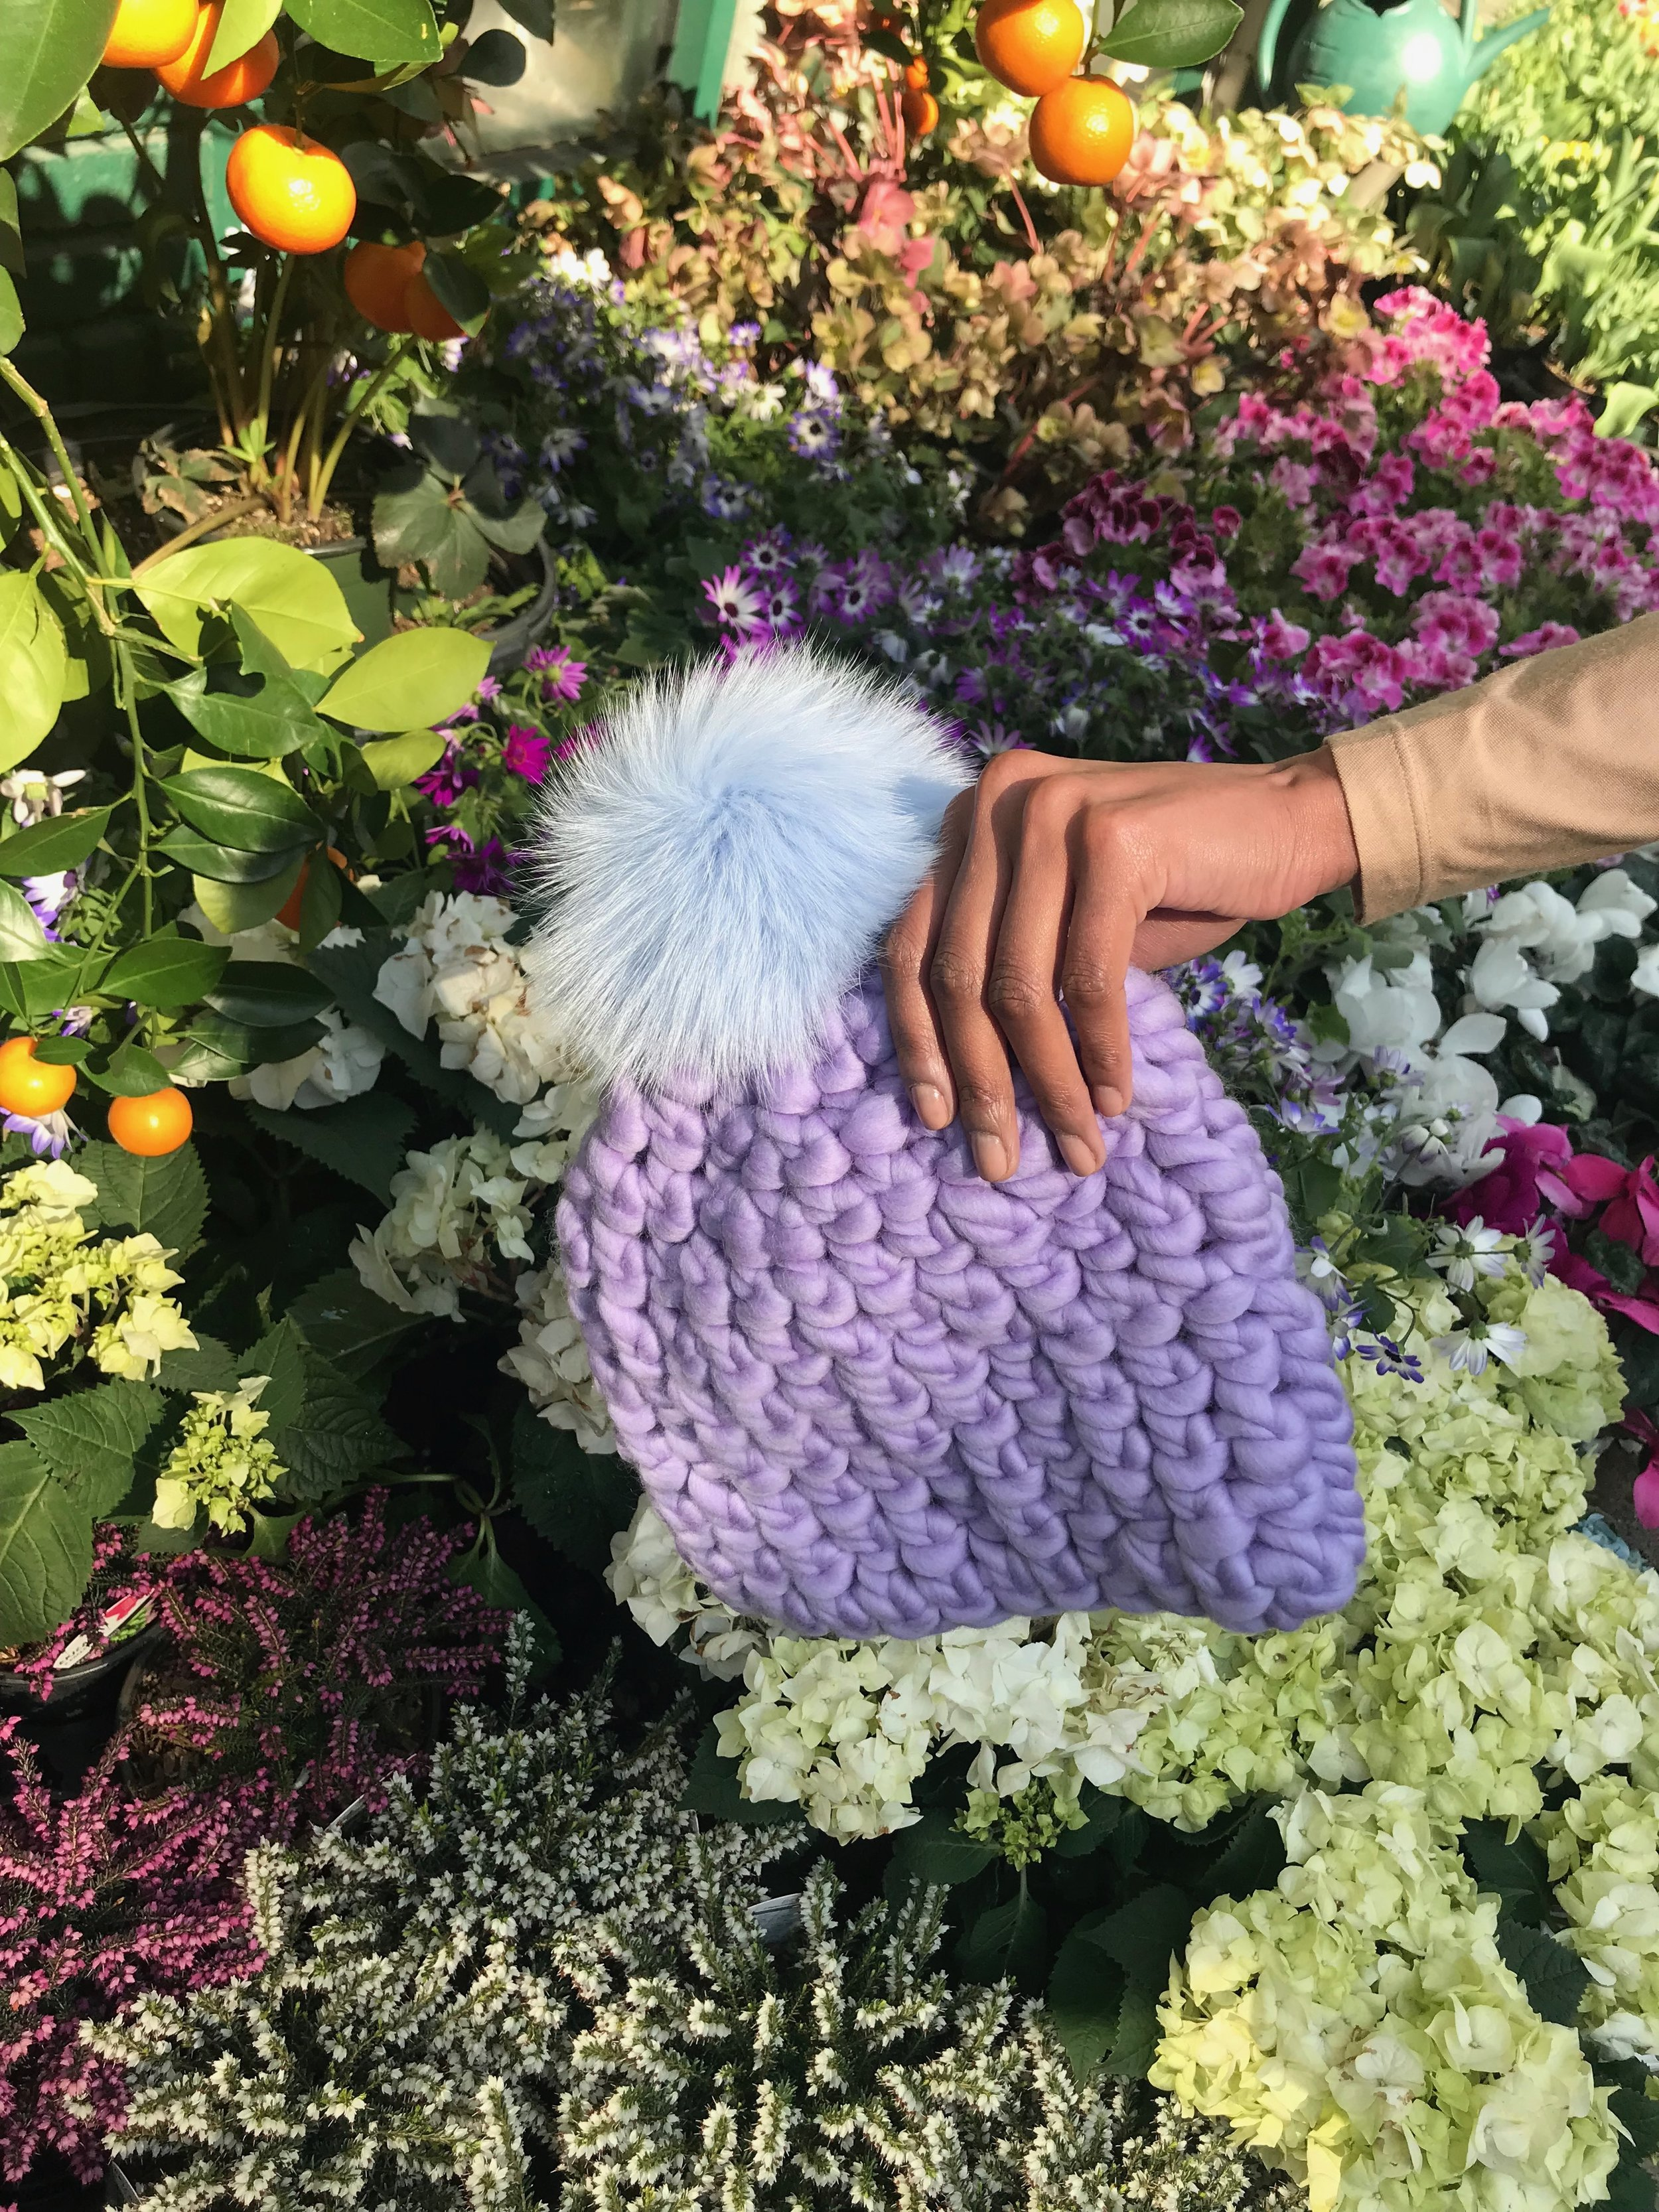 shaanti is wearing  the iris beanie pomster with baby blue pom